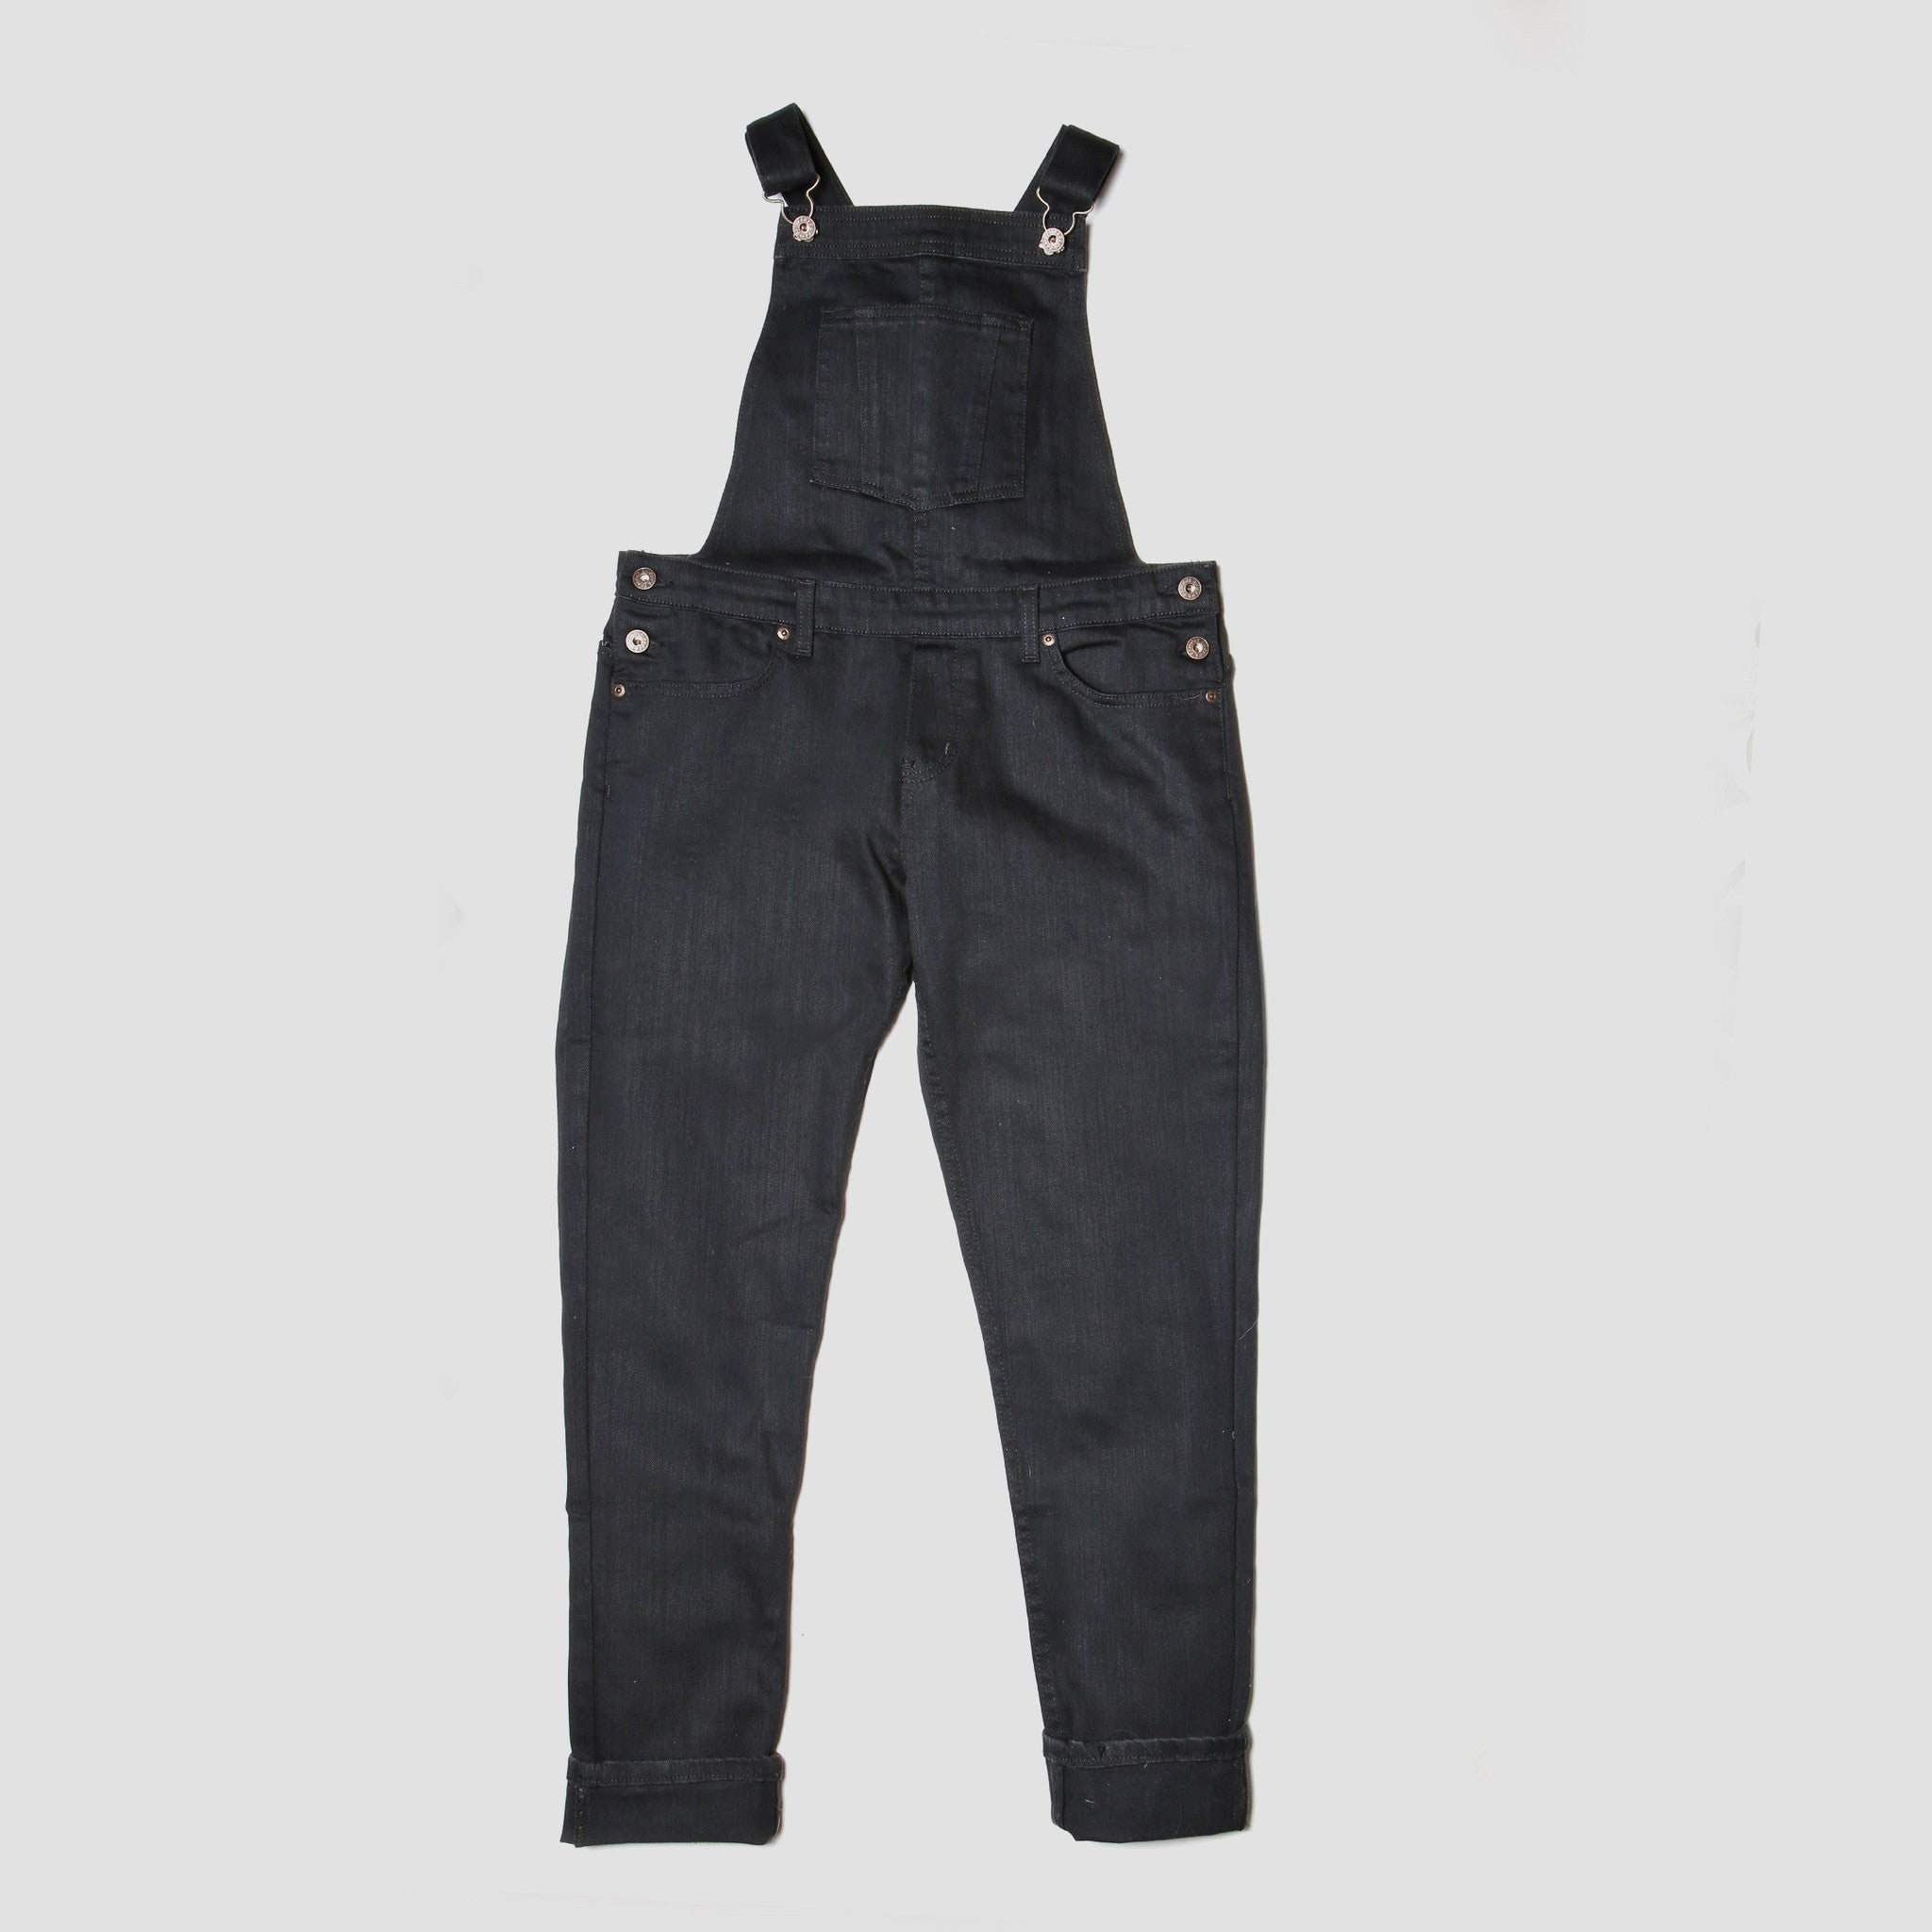 The Overalls - Black Power Stretch